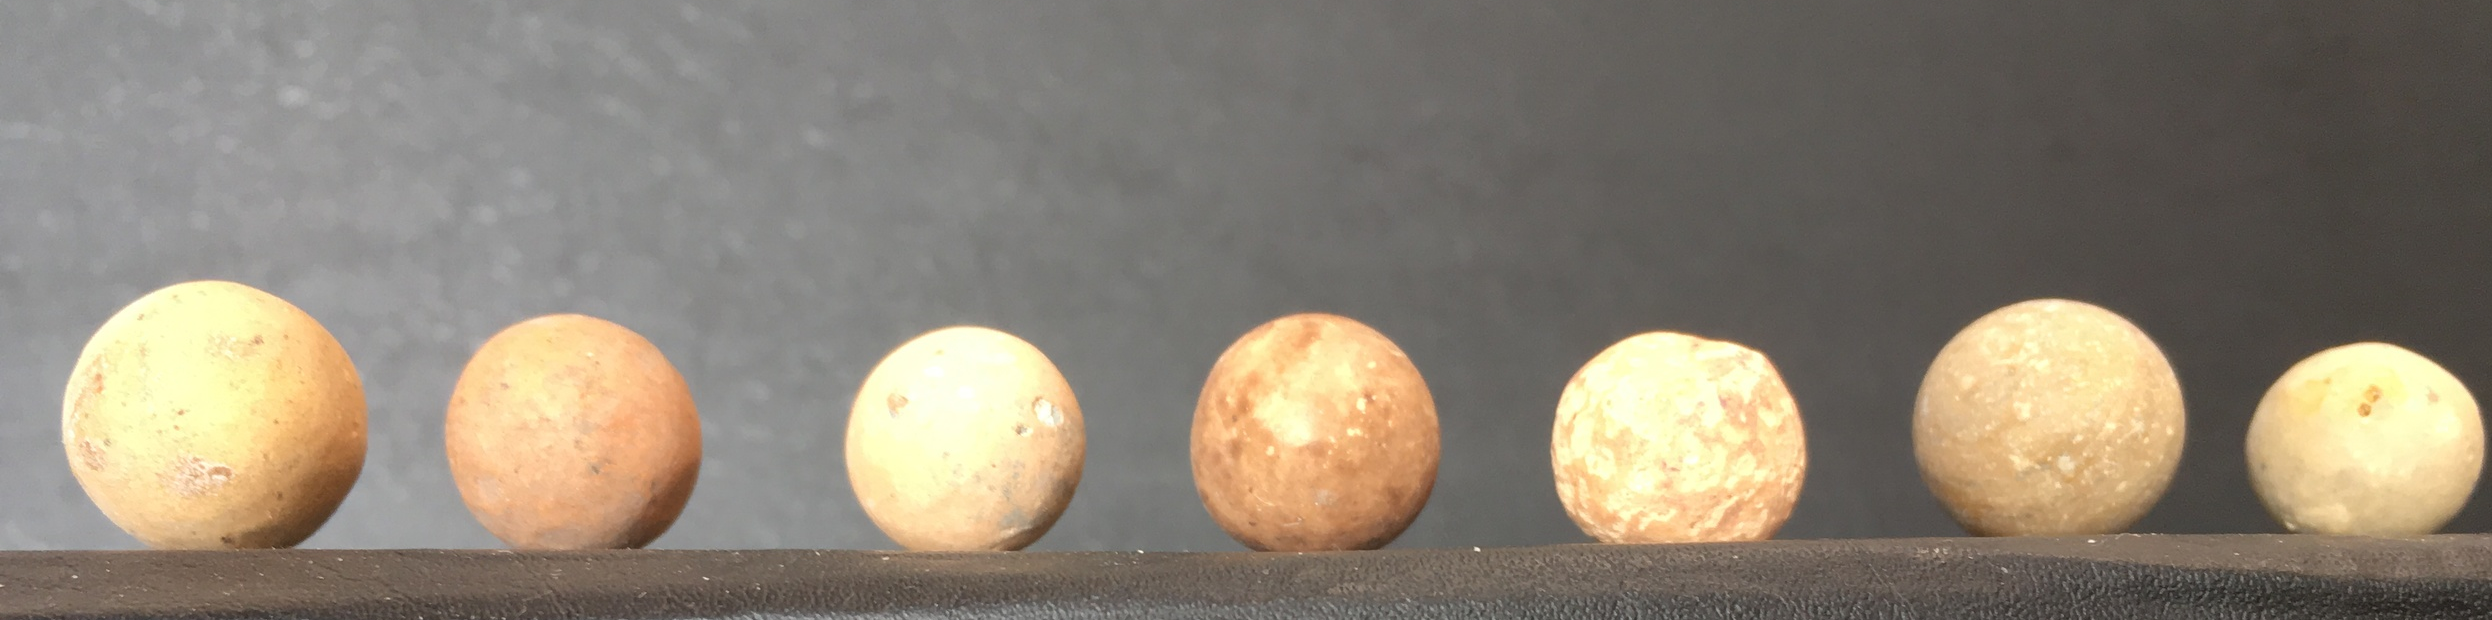 Clay marbles of many shapes and colors